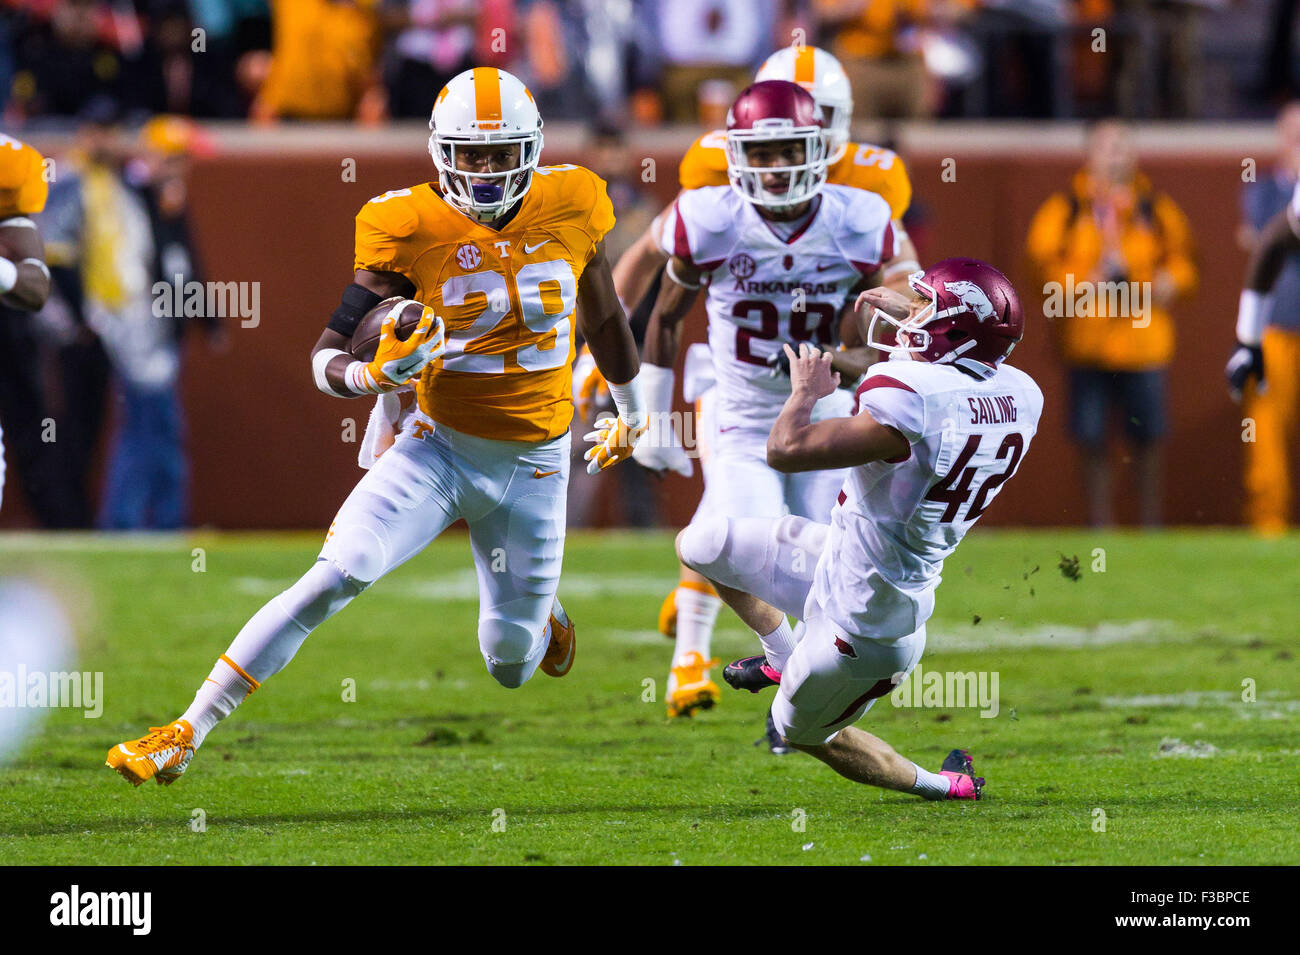 October 03, 2015: Lane Saling #42 of the Arkansas Razorbacks tries to tackle Evan Berry #29 of the Tennessee Volunteers - Stock Image